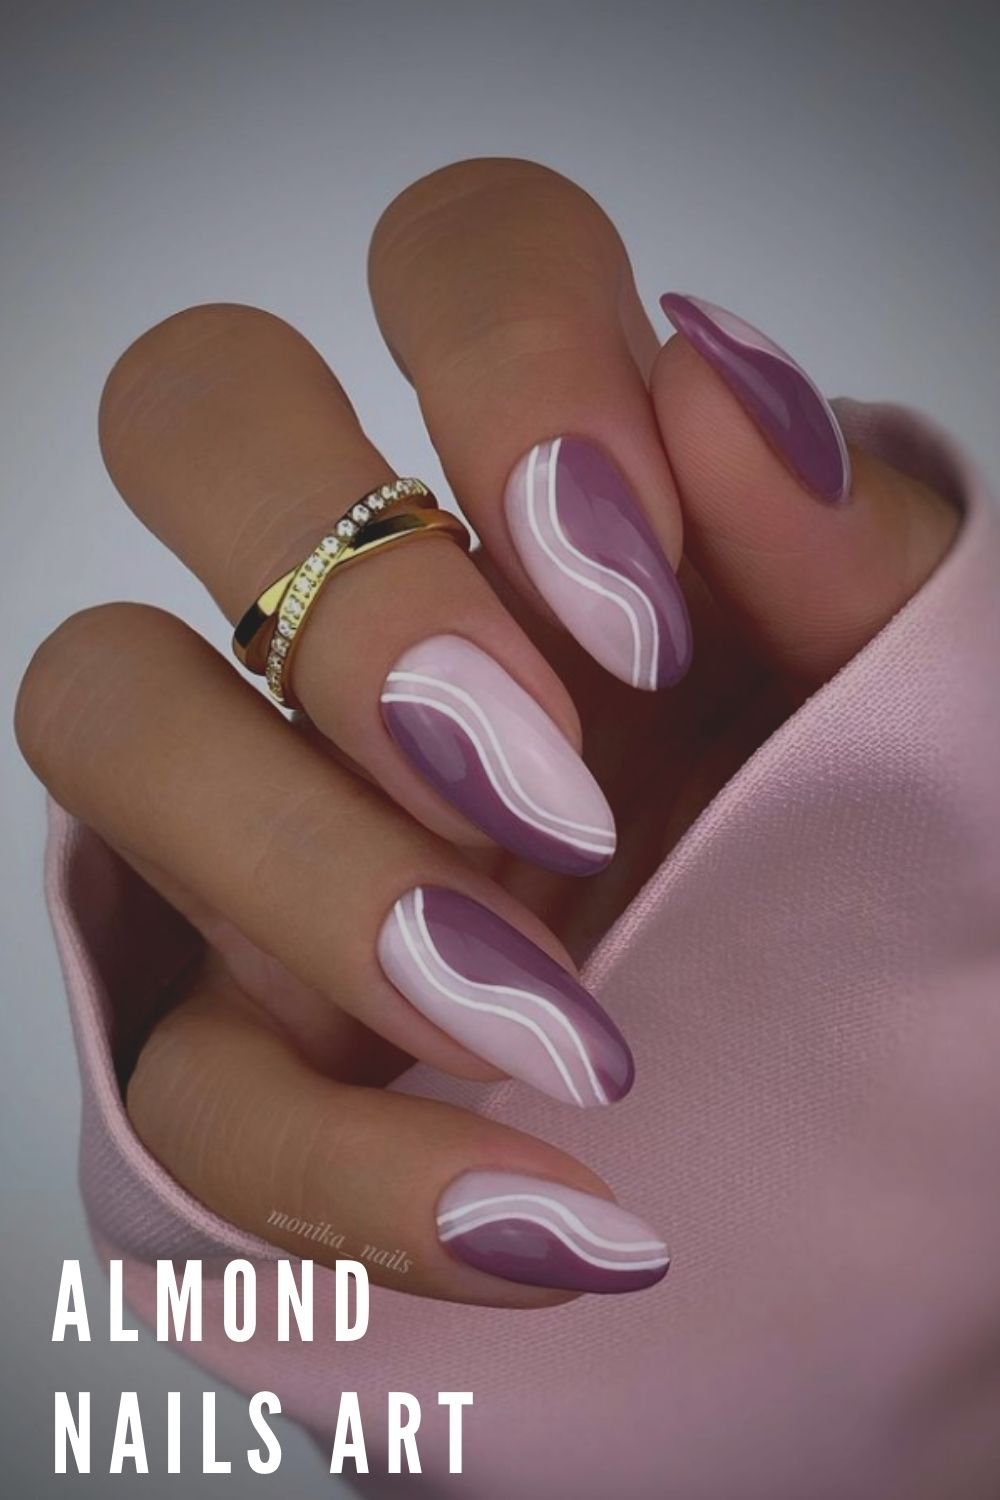 Purple and white almond nails art